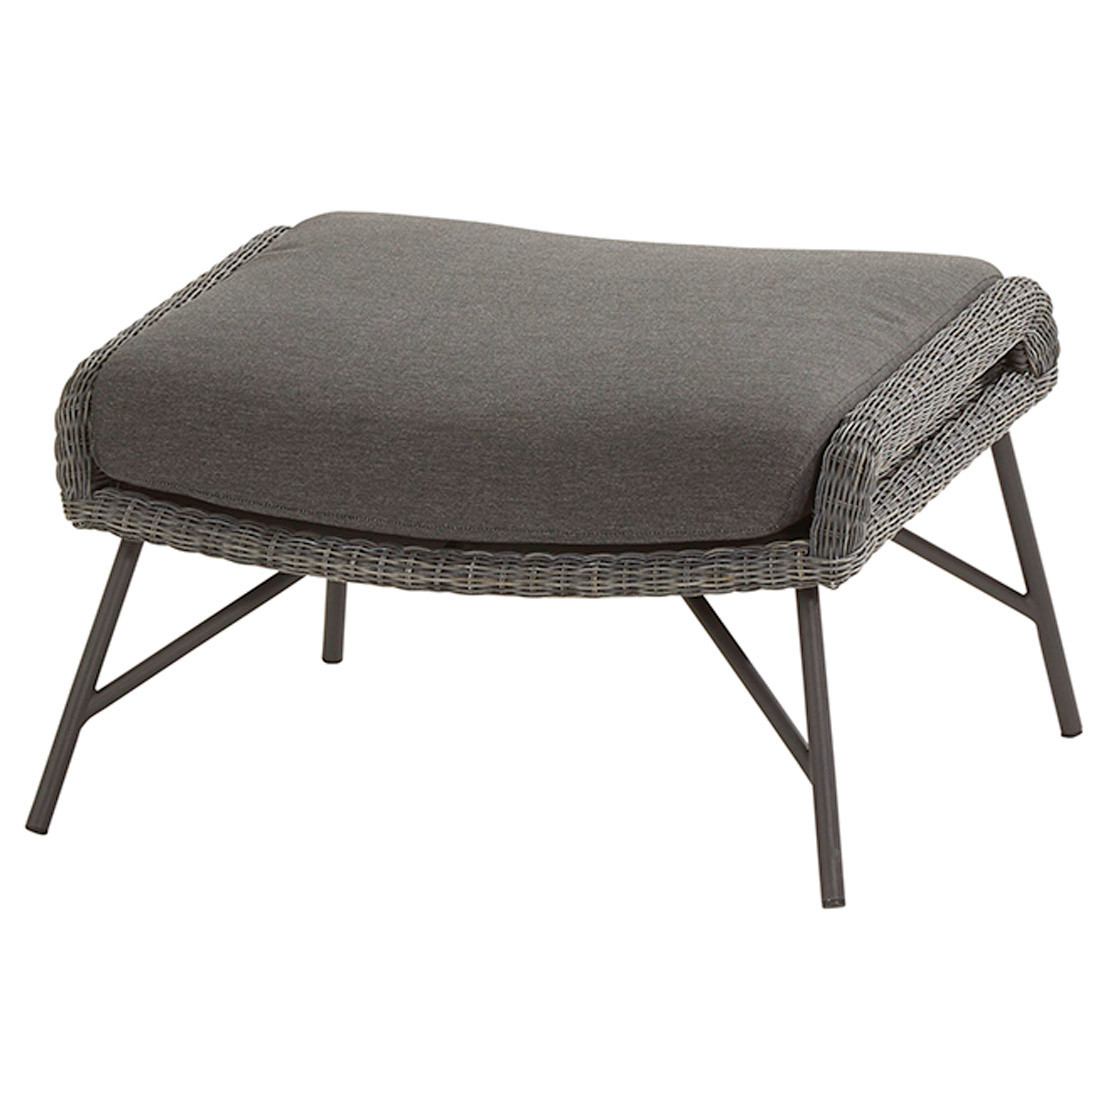 Samoa footstool Ecoloom Charcoal with cushion